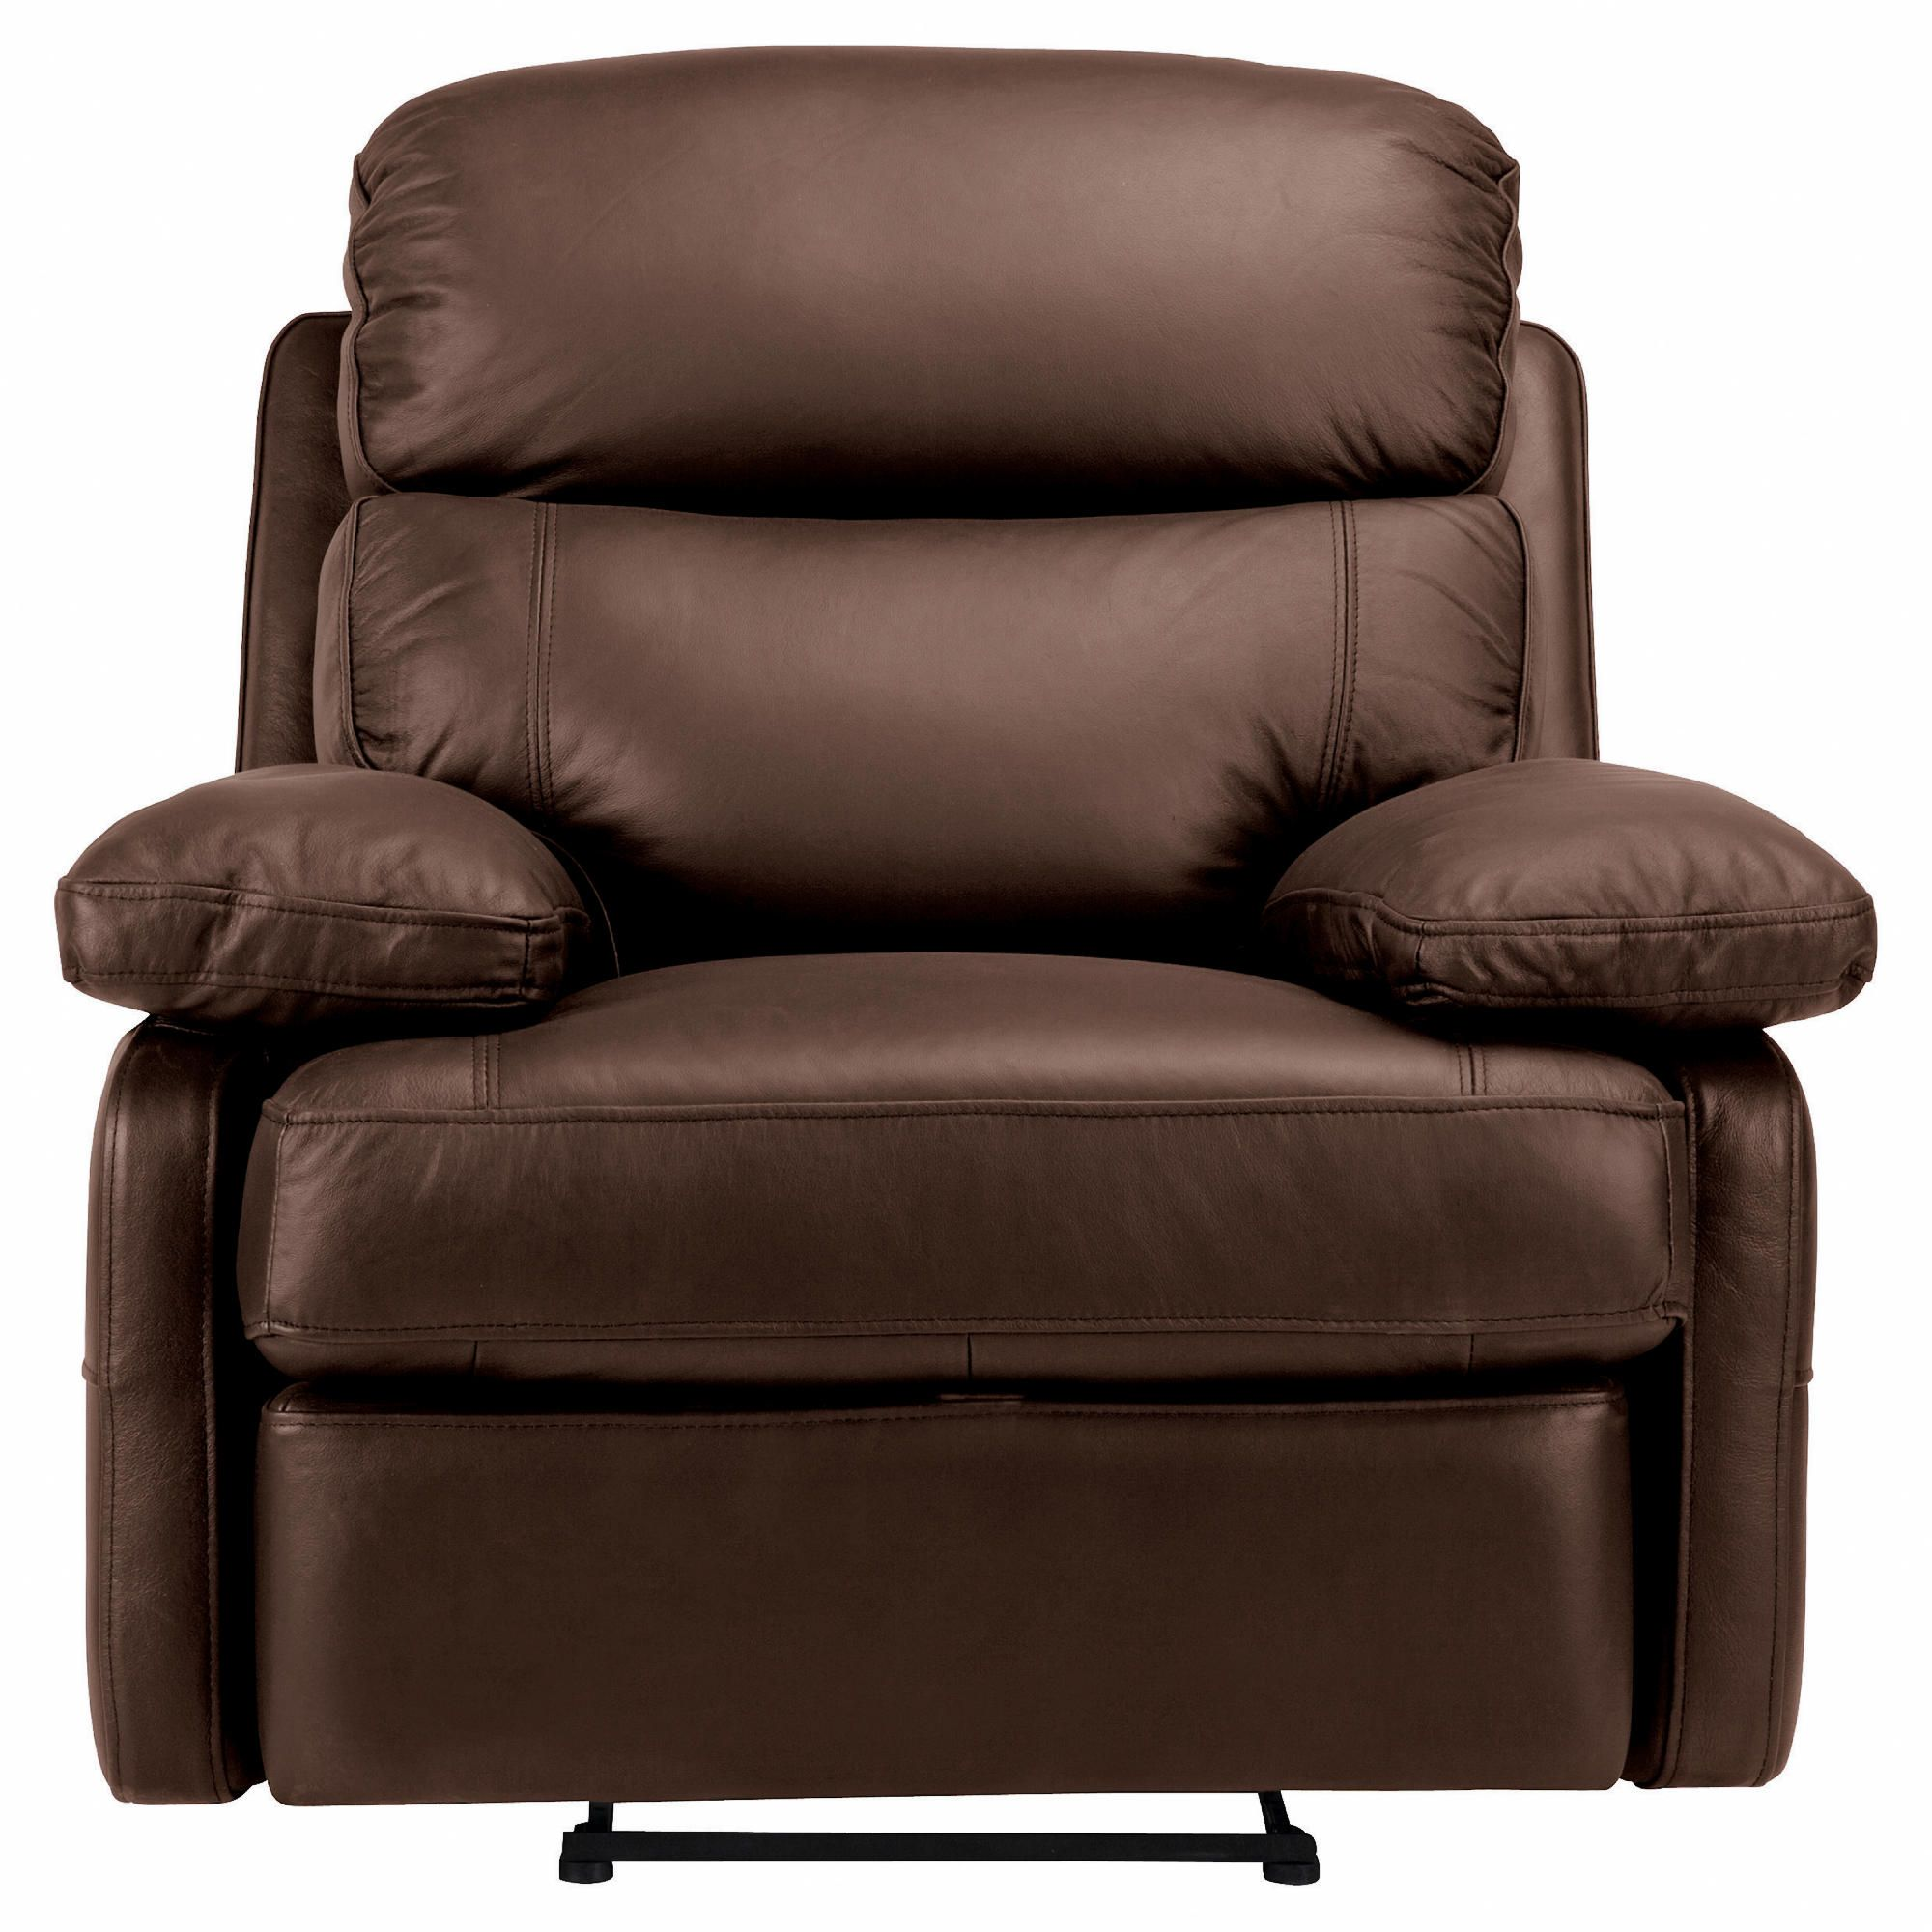 Cordova Leather Recliner Chair Chocolate at Tescos Direct